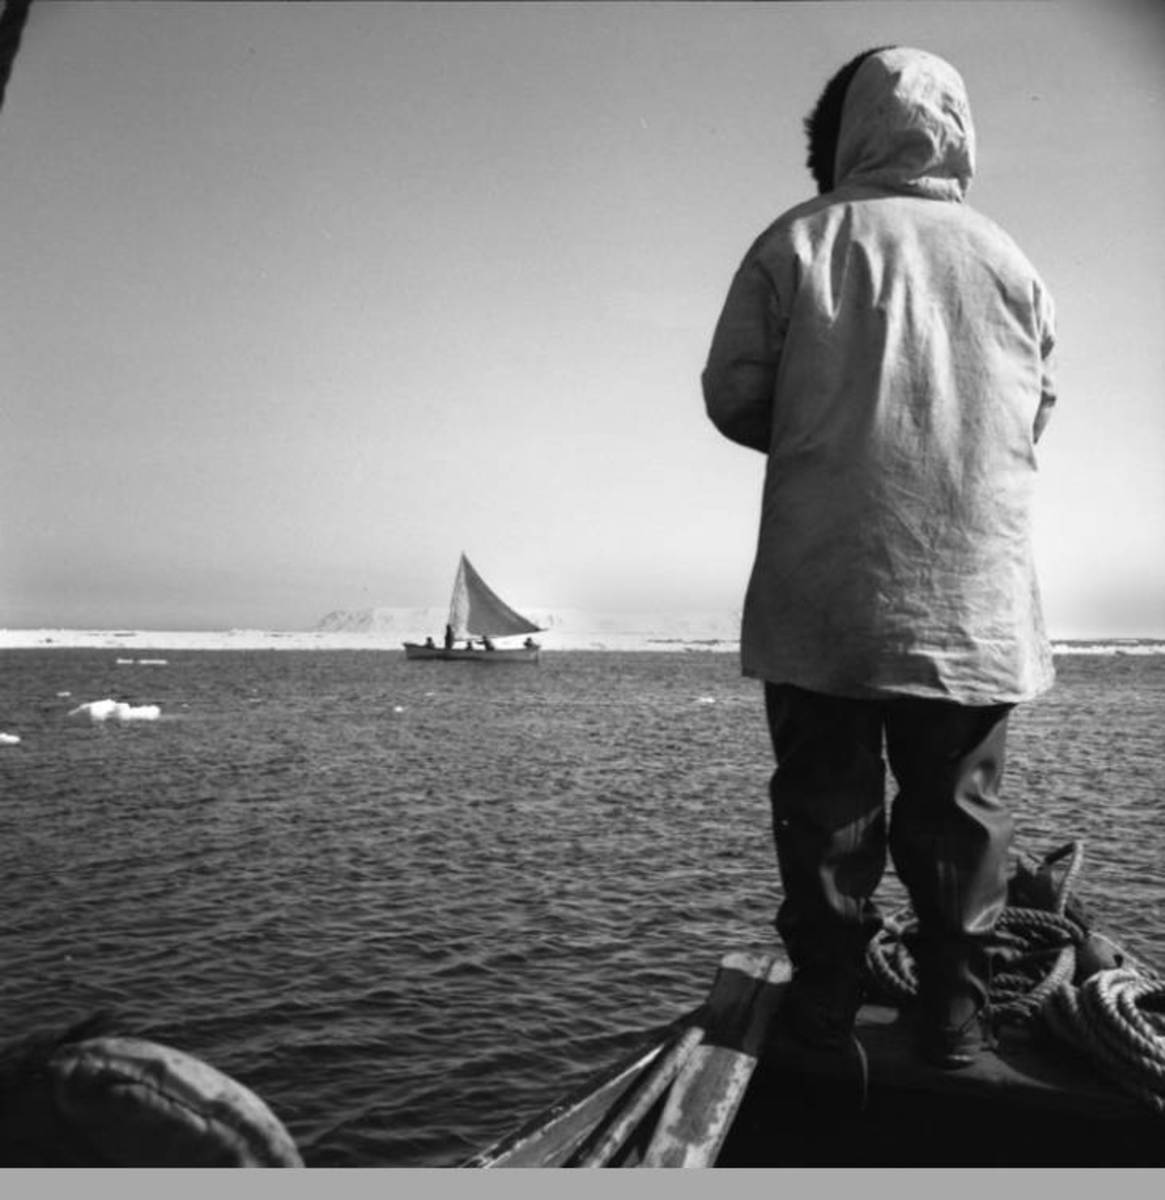 ANCSA: Sailing in ice, Inupiaq boat. (Photo courtesy of the Anchorage Museum at Rasmuson Center)